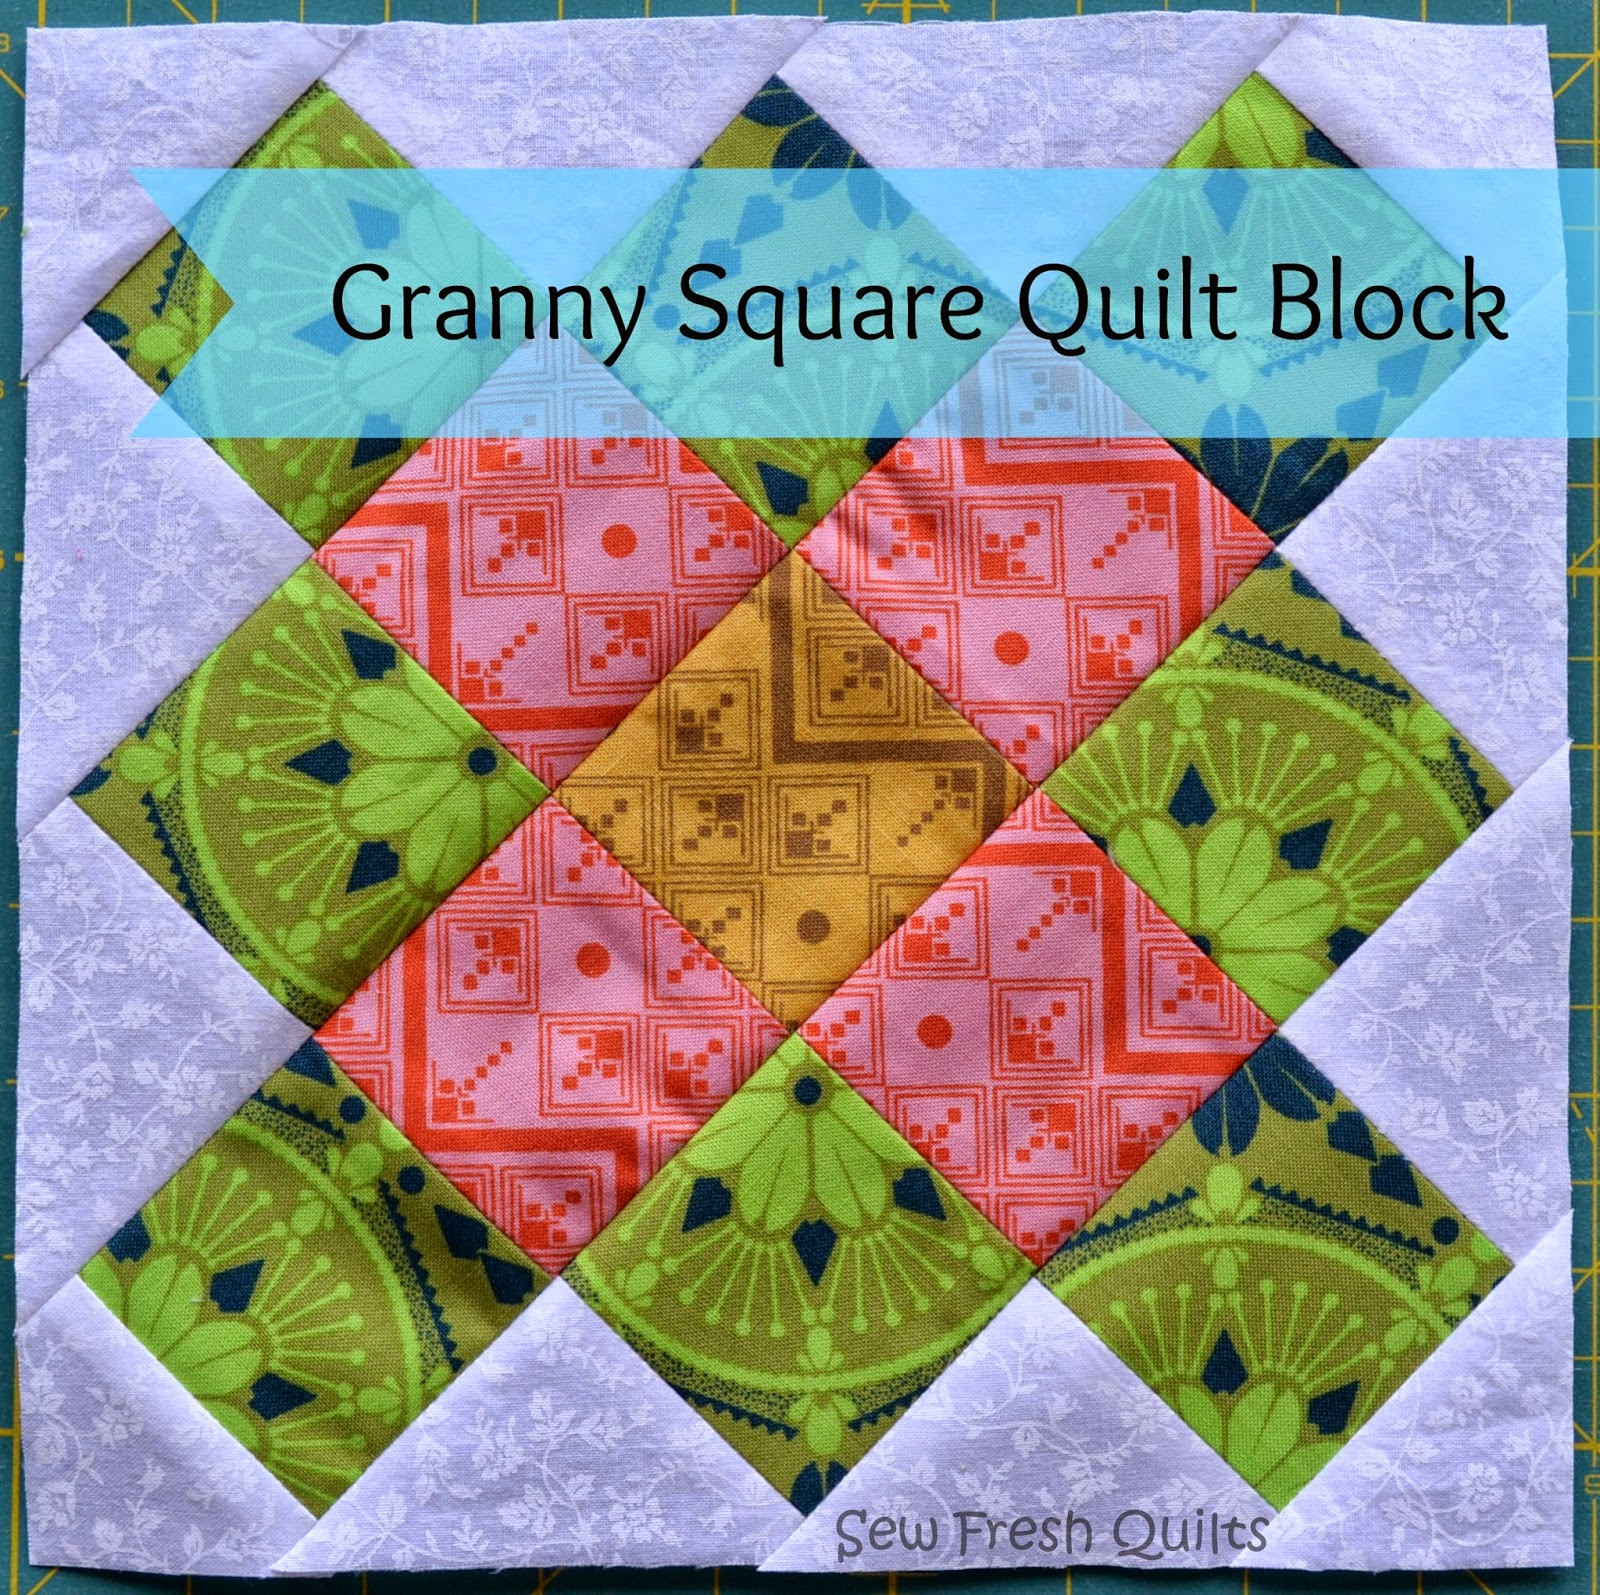 http://sewfreshquilts.blogspot.ca/2014/03/granny-square-quilt-block-tutorial-part_11.html